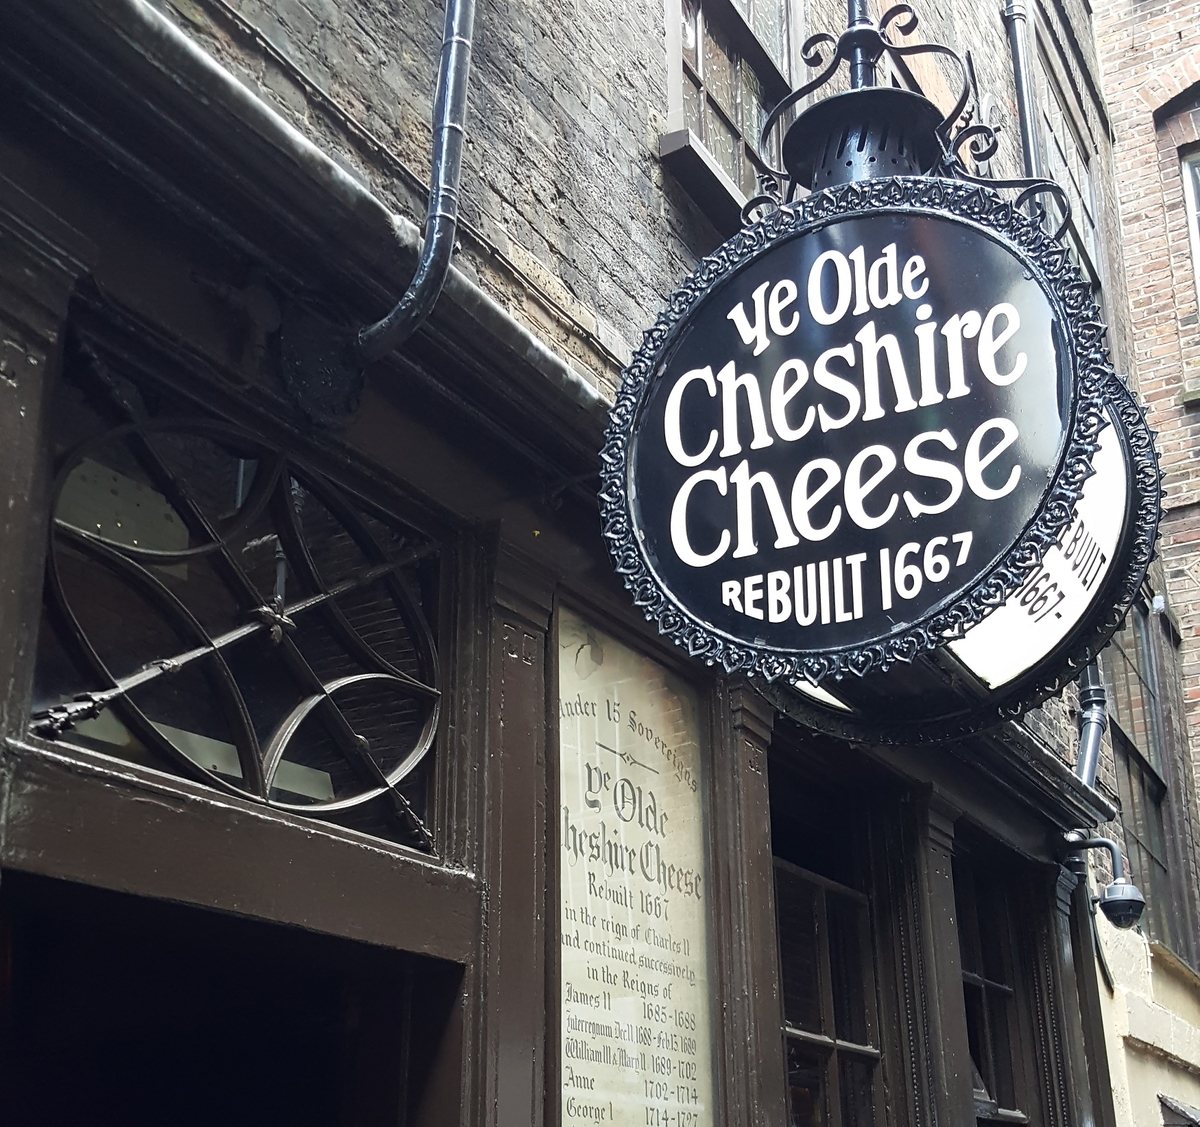 ye olde cheshire cheese street sign in front of entrance